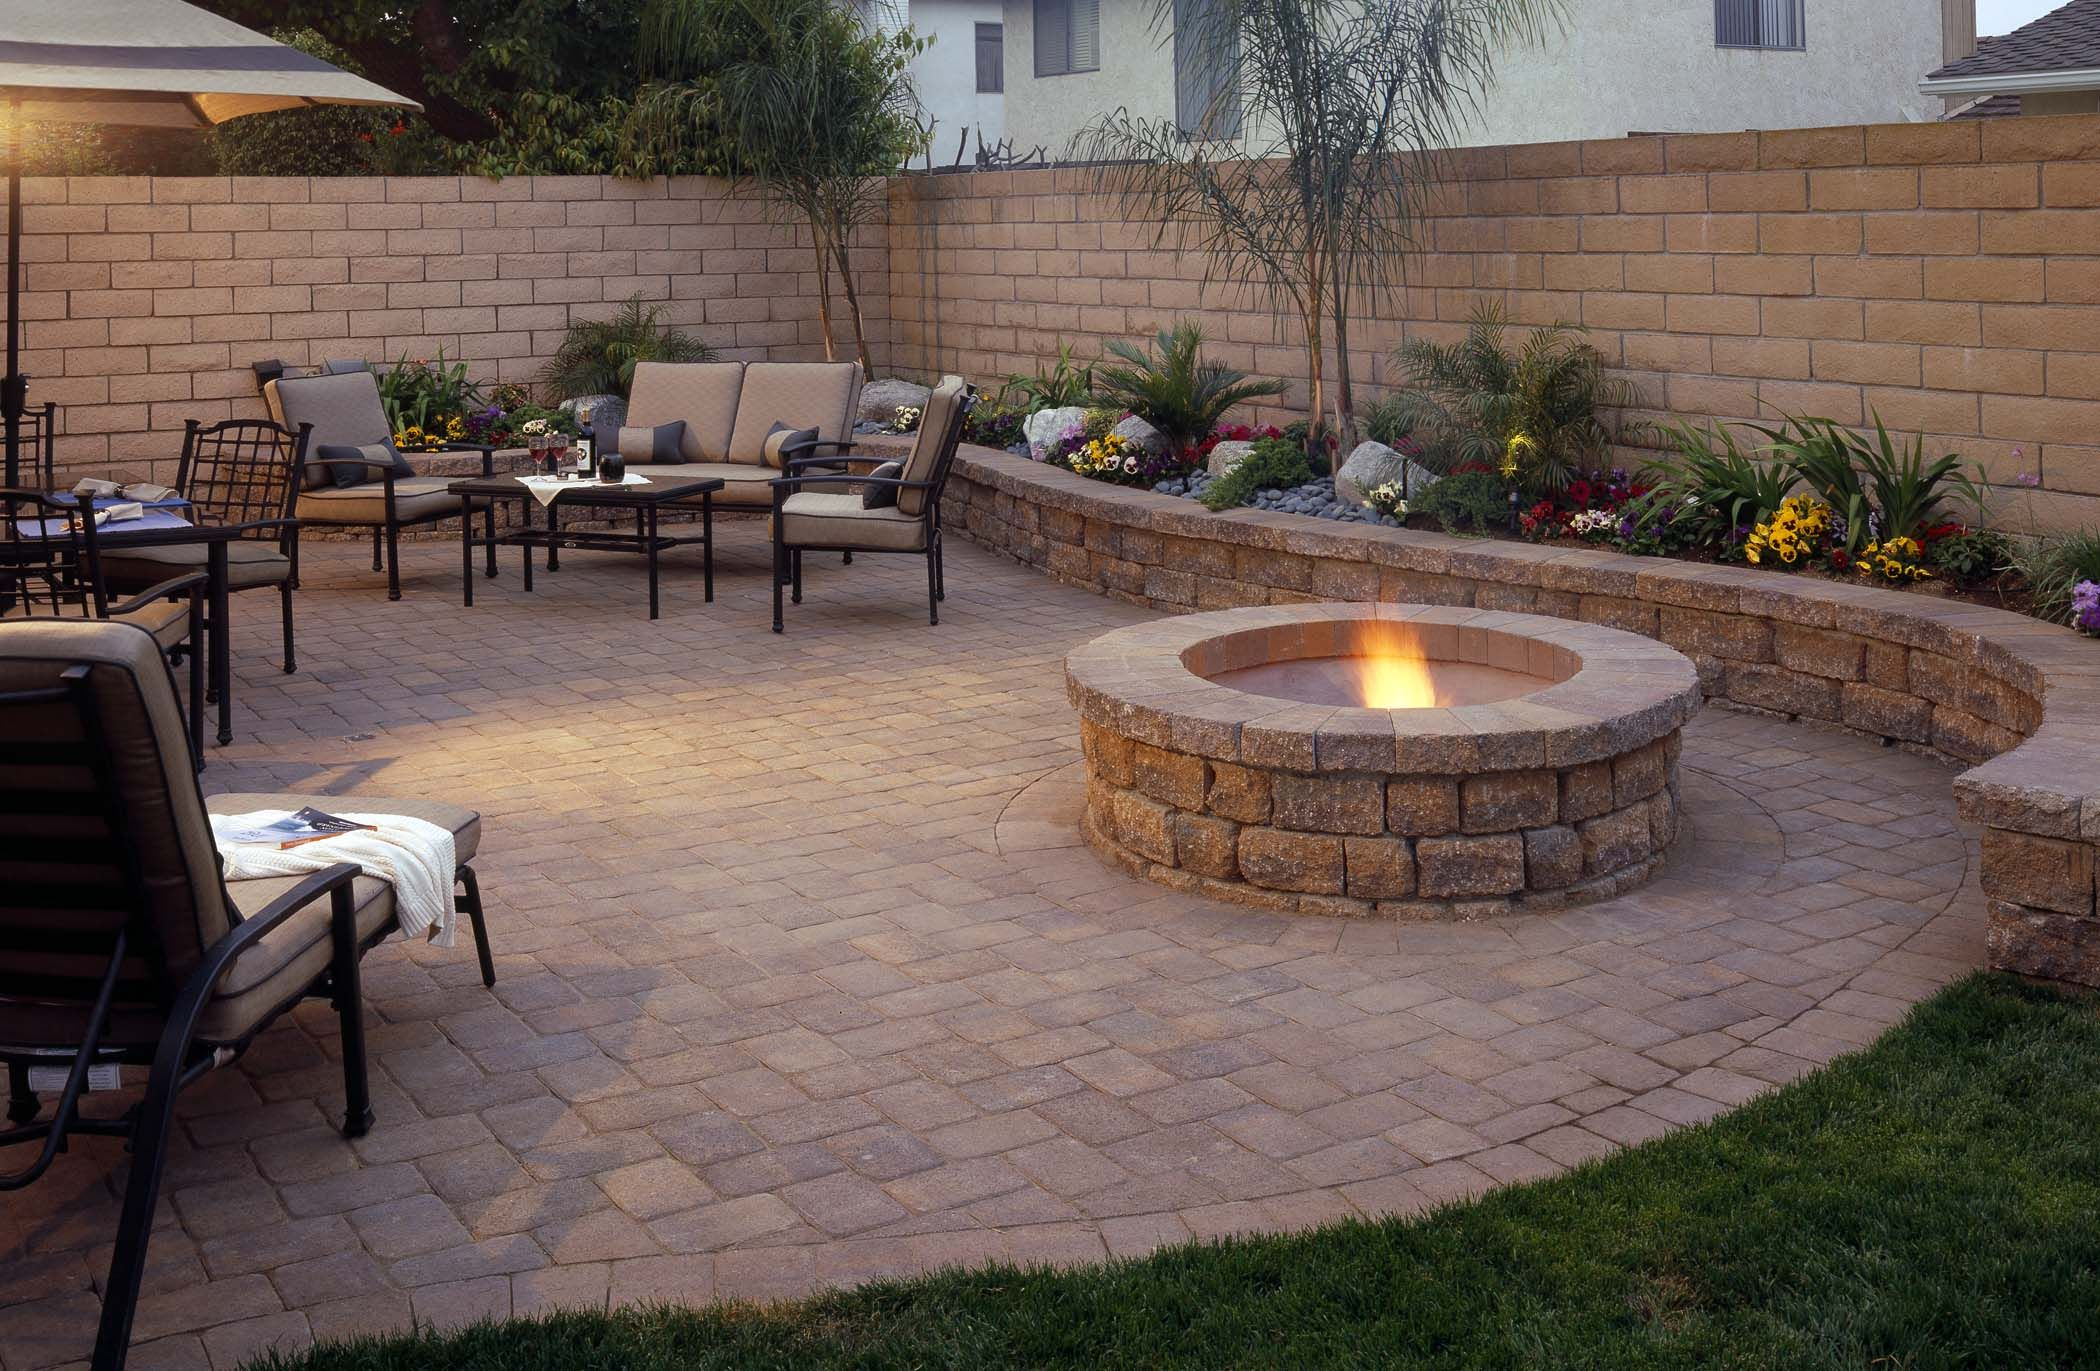 Best Backyard Paver Patio Ideas Designs Design Idea And Decor throughout 12 Some of the Coolest Ways How to Craft Backyard Landscaping Ideas With Pavers